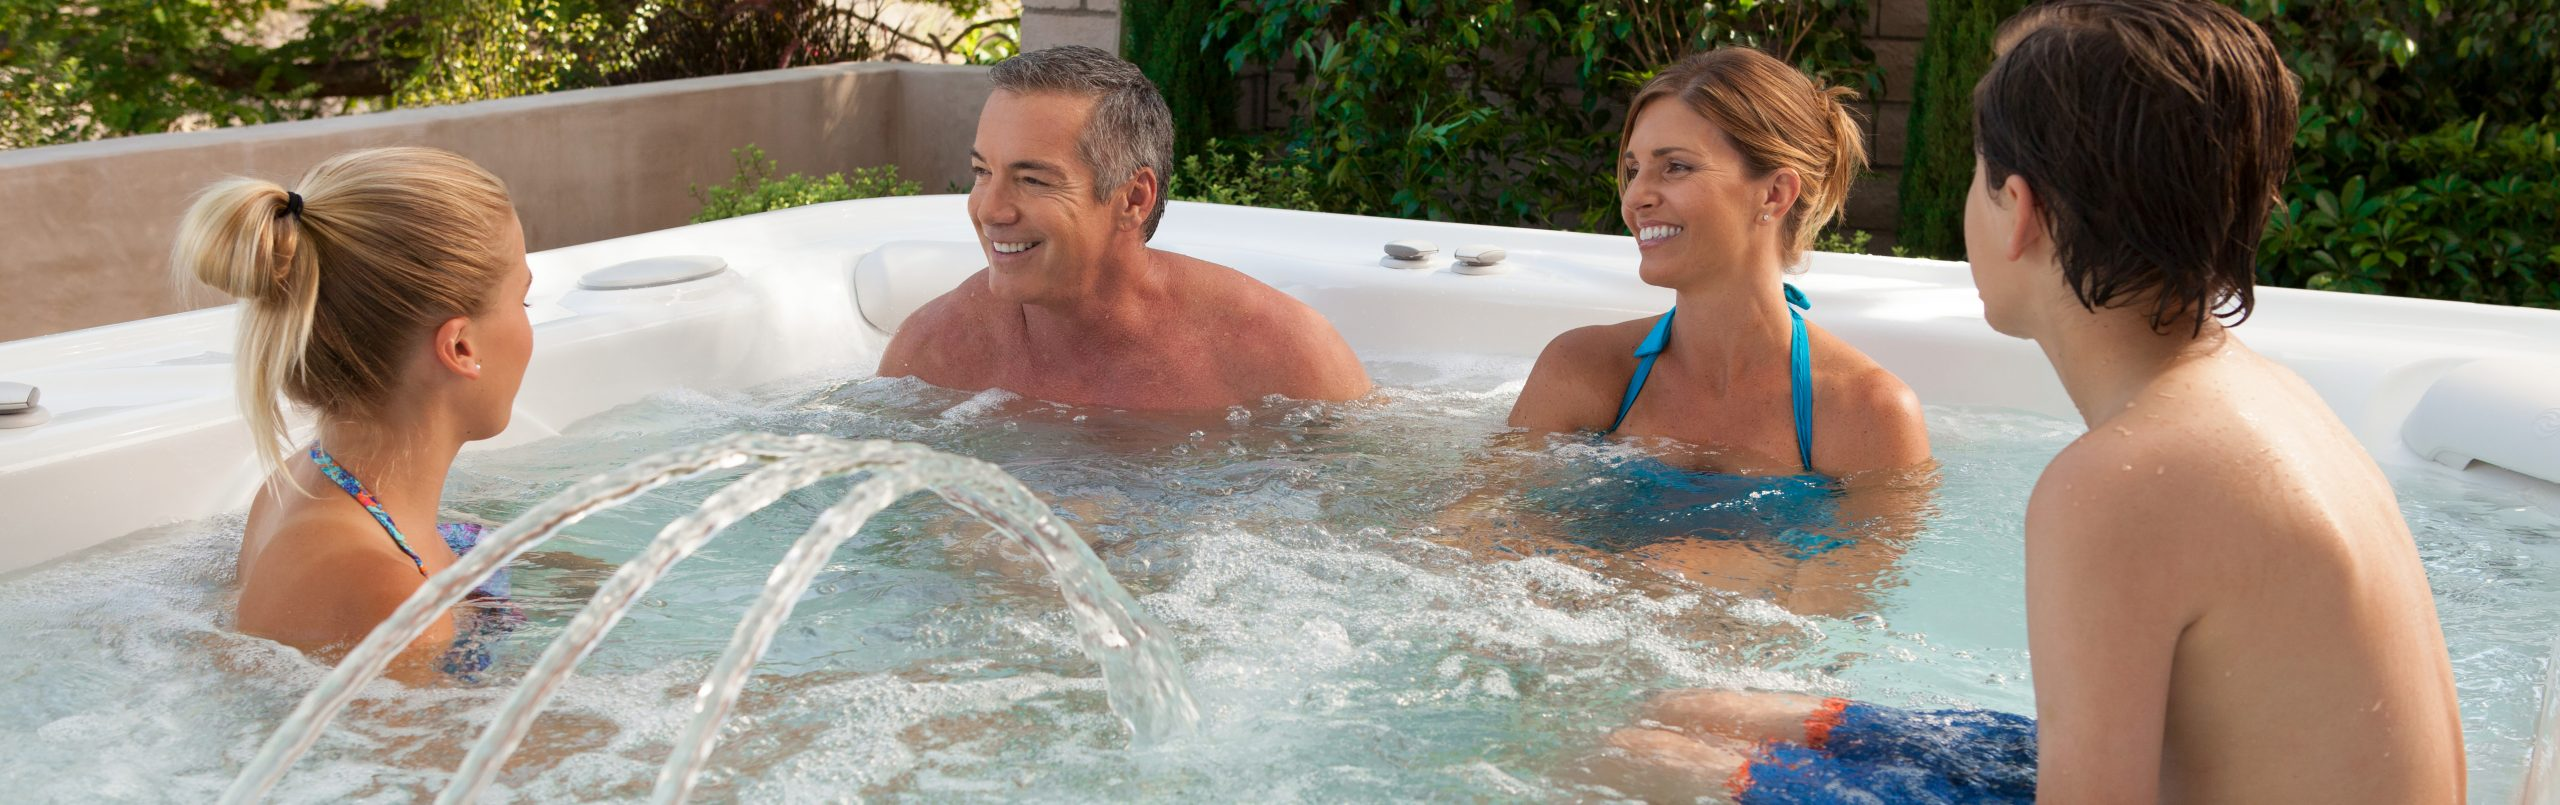 All The Ways To Customize Your Hot Tub